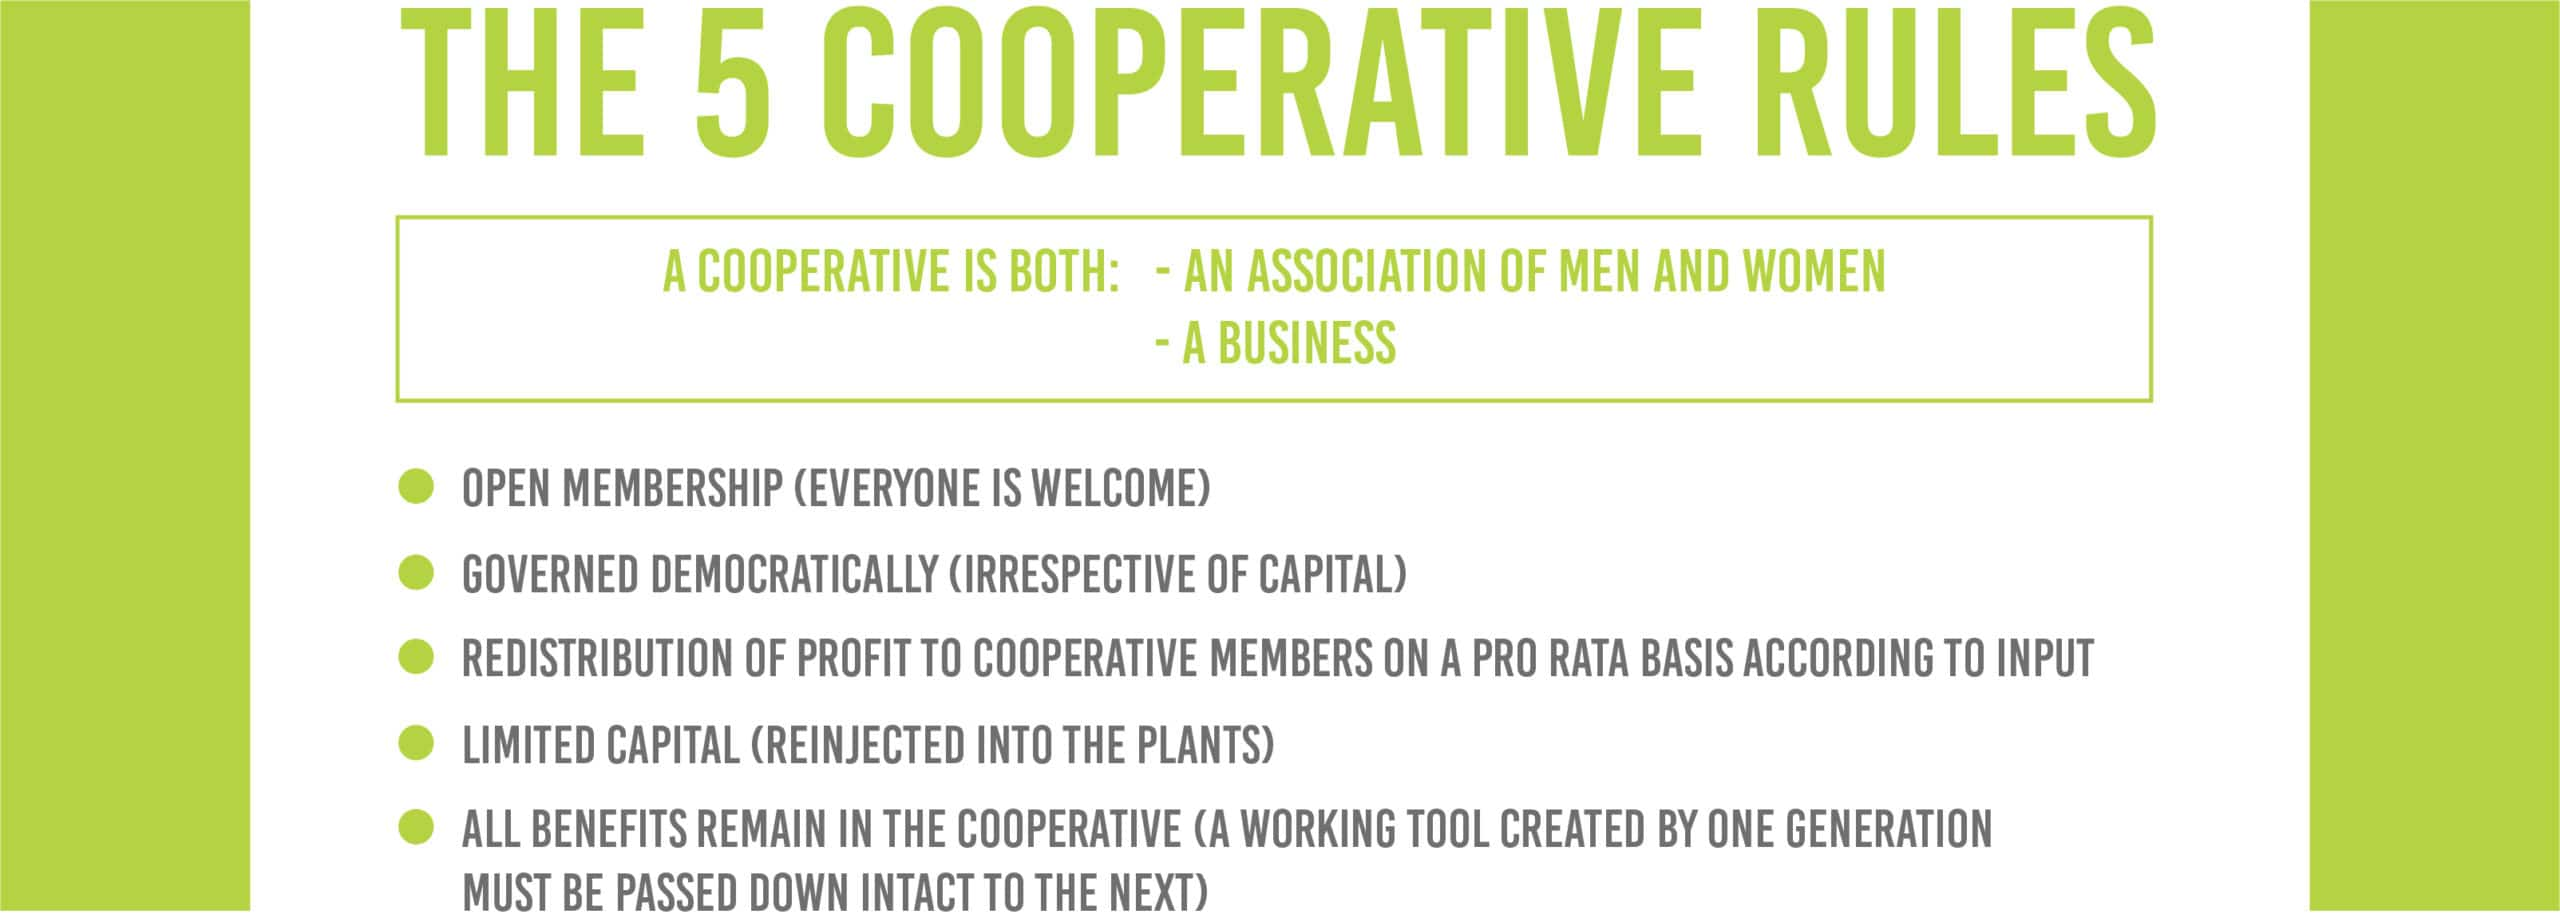 The 5 cooperative rules